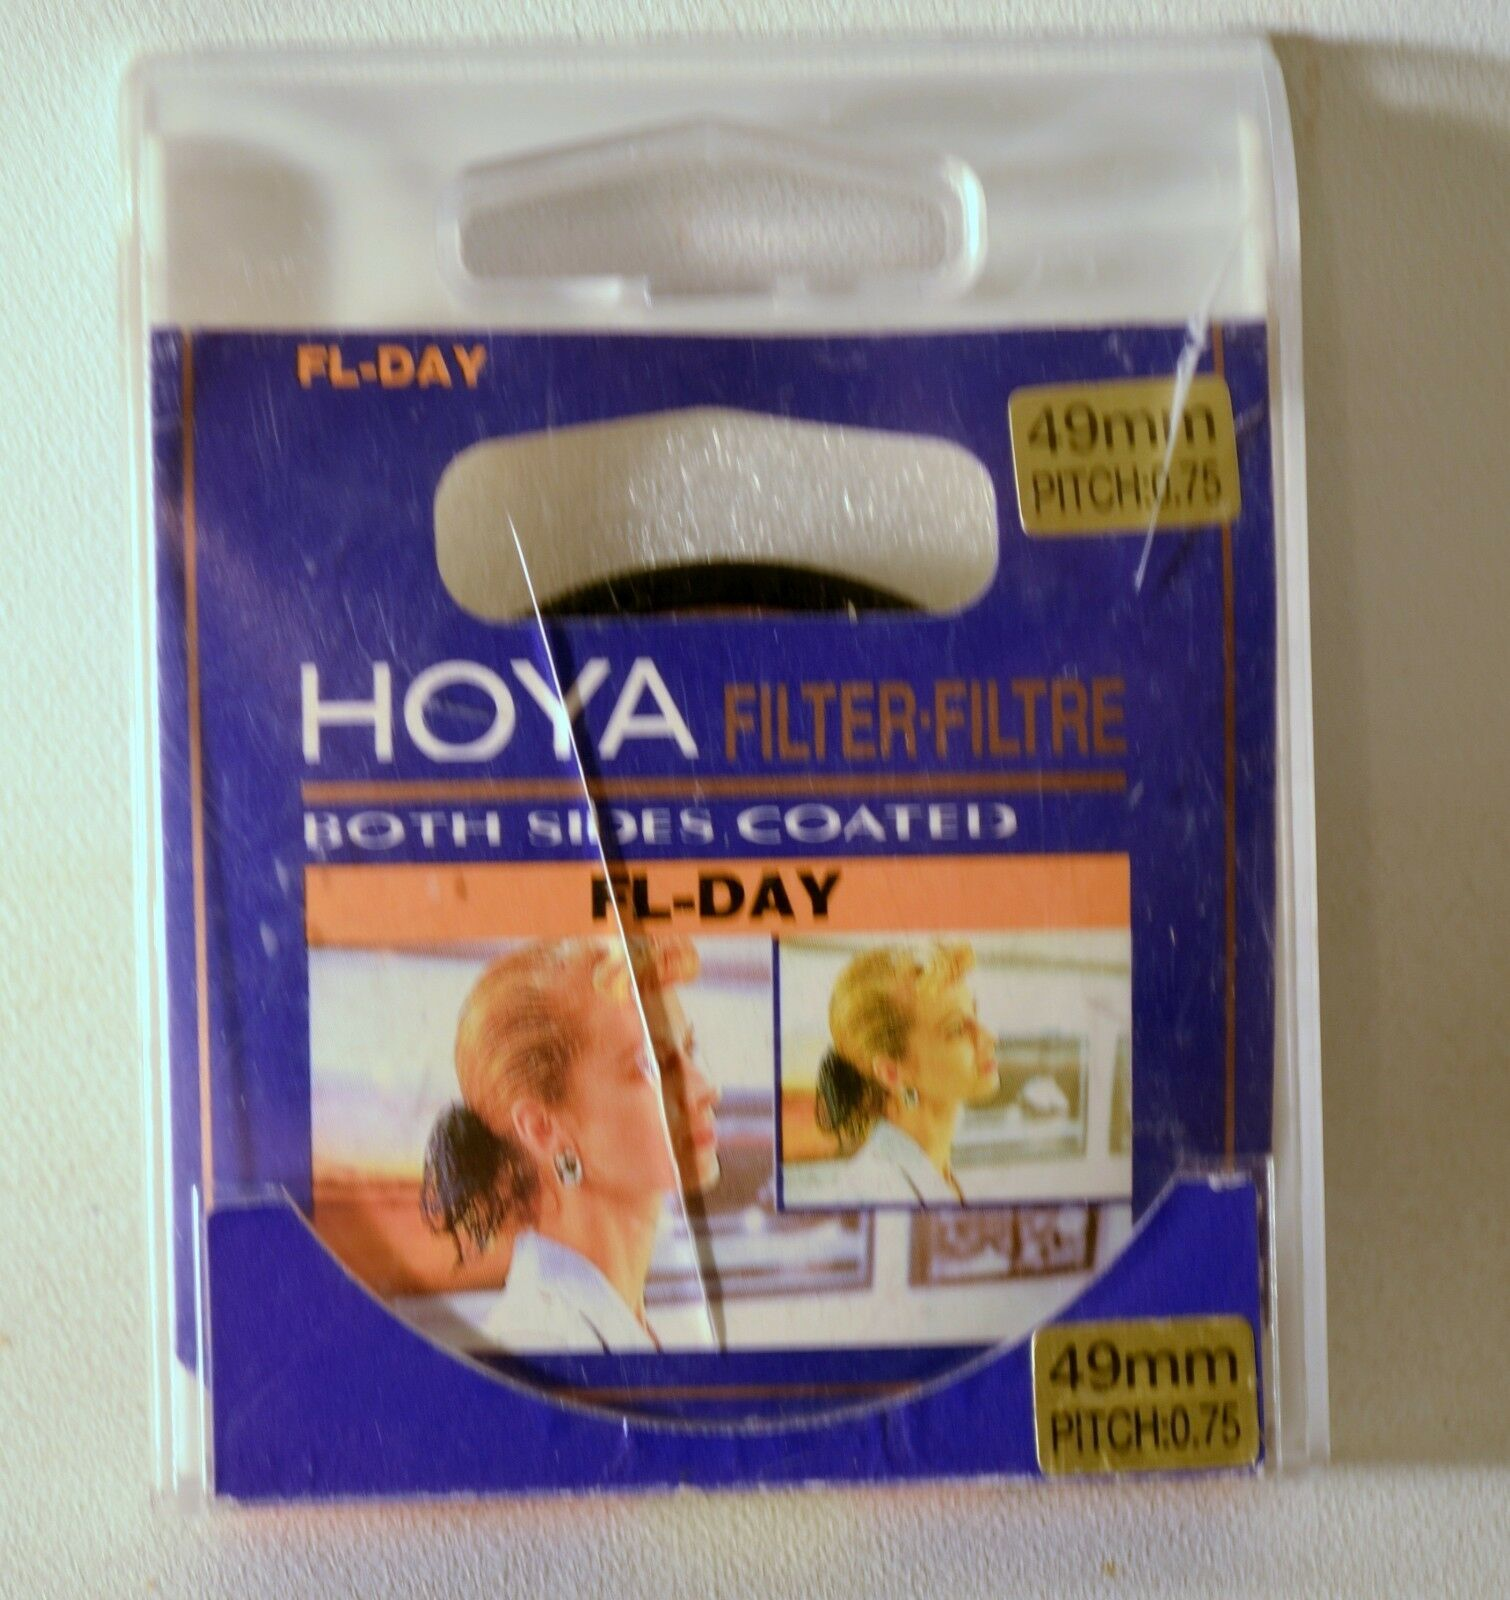 Primary image for Hoya Both Sides Coated FL-Day Filter 49mm